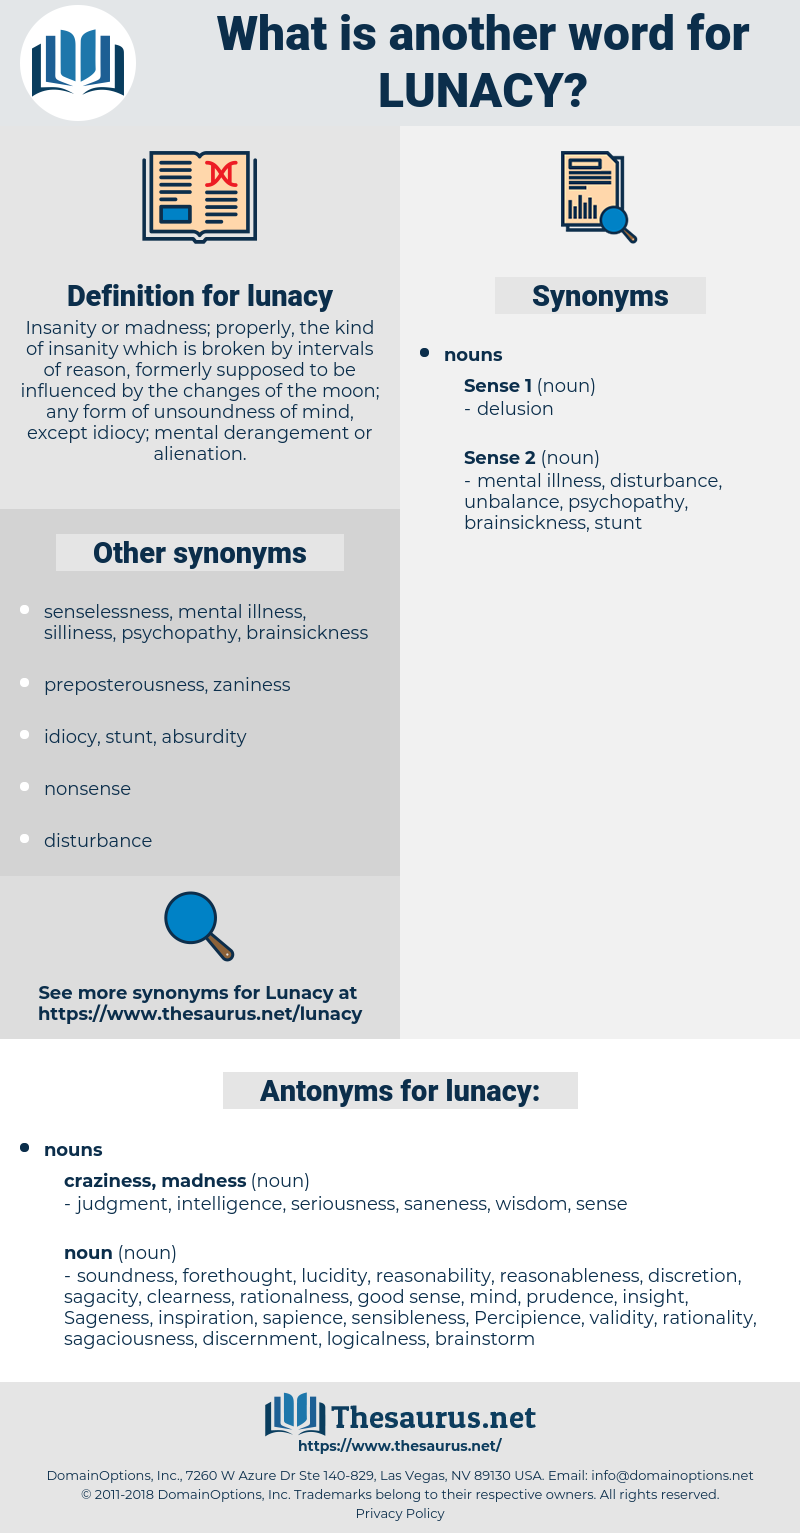 lunacy, synonym lunacy, another word for lunacy, words like lunacy, thesaurus lunacy